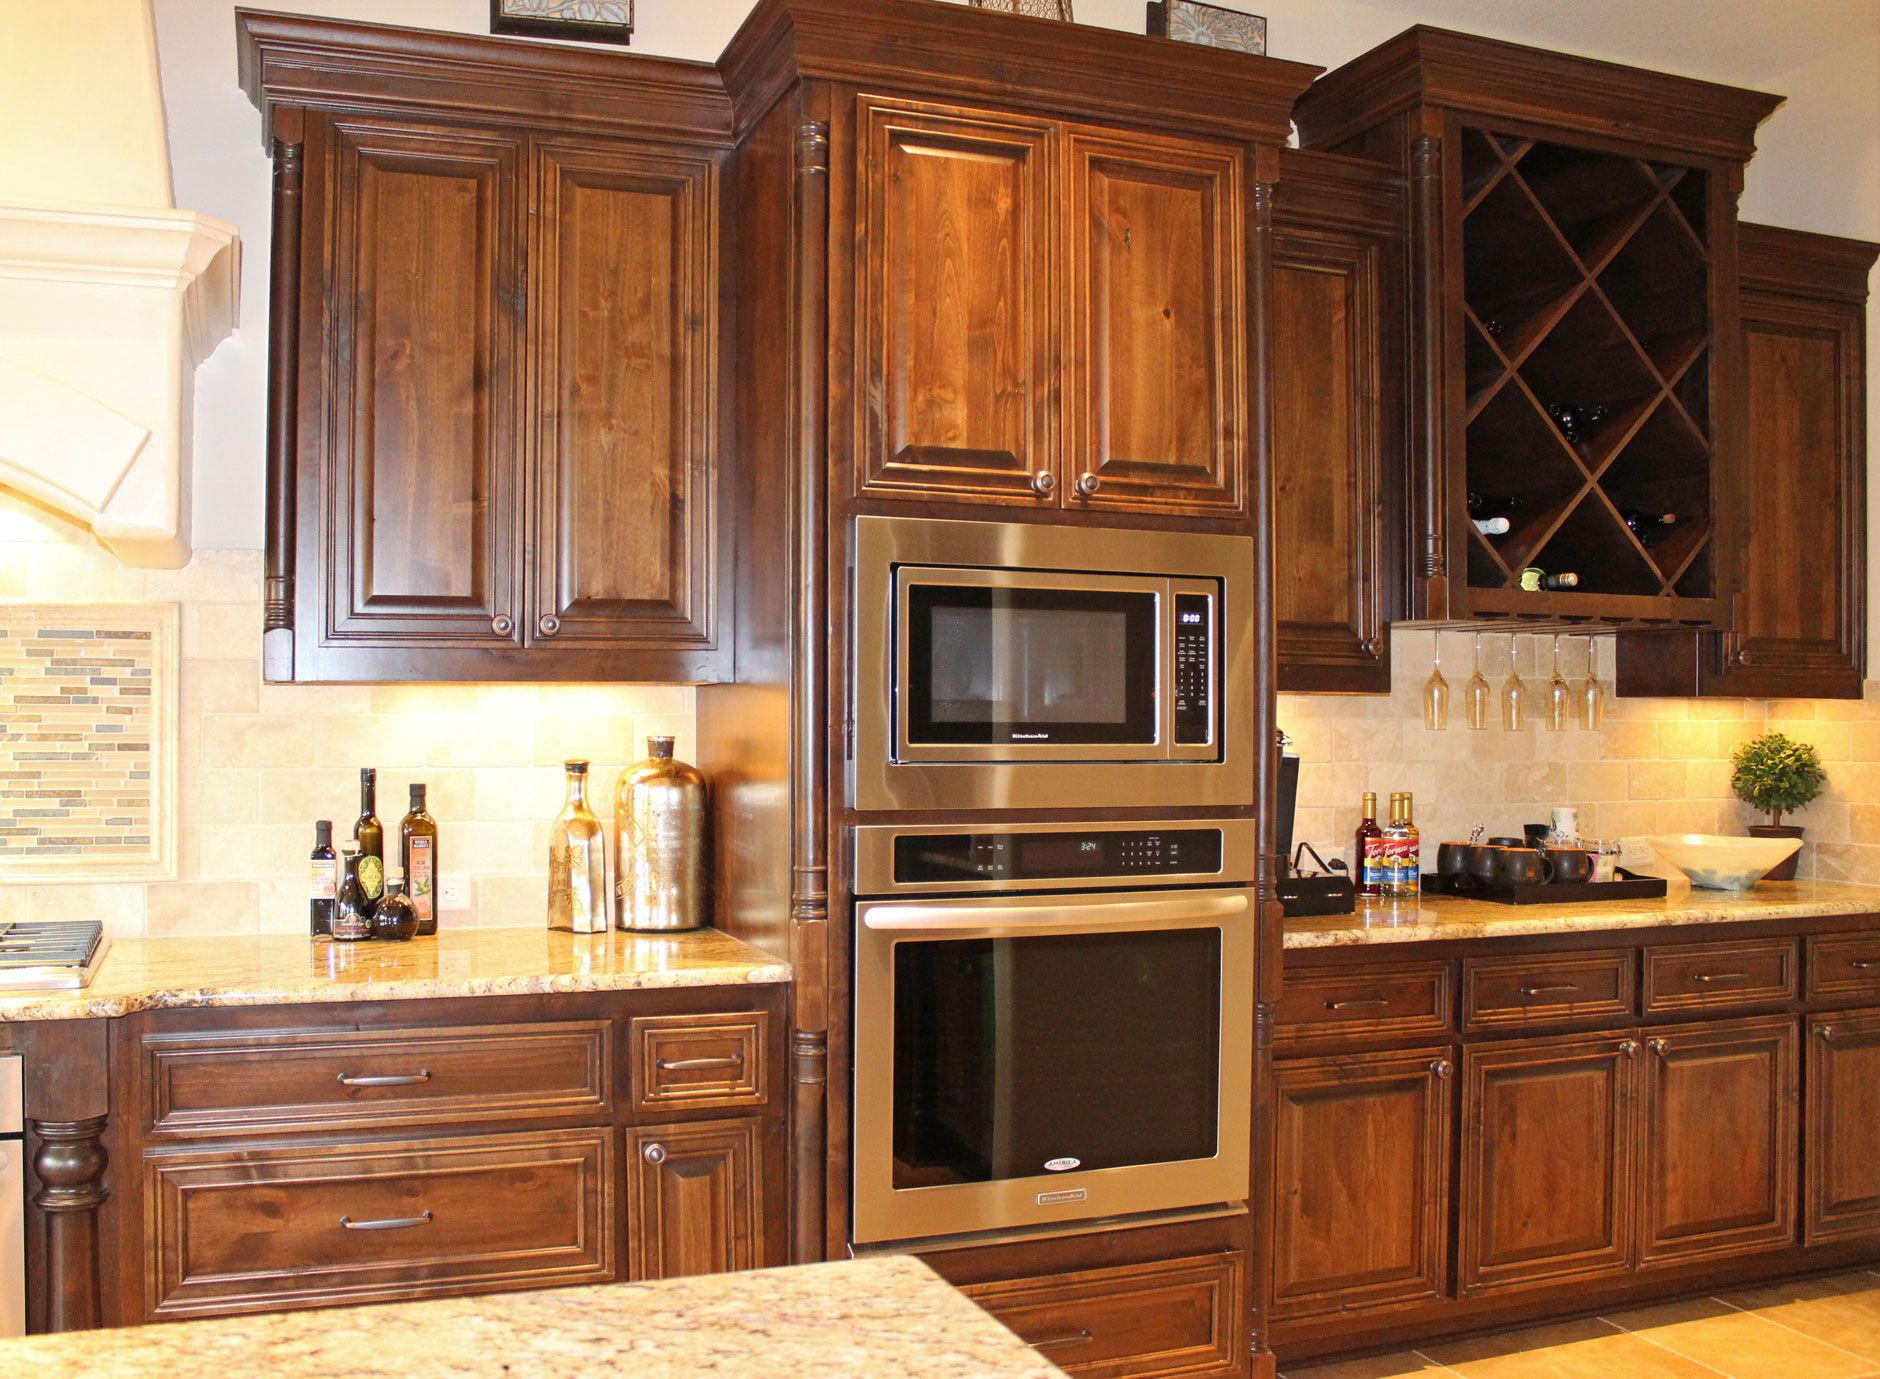 Kitchen Cabinets In Knotty Alder By Burrows Cabinets   Central Texas Builder  Direct Custom Cabinets